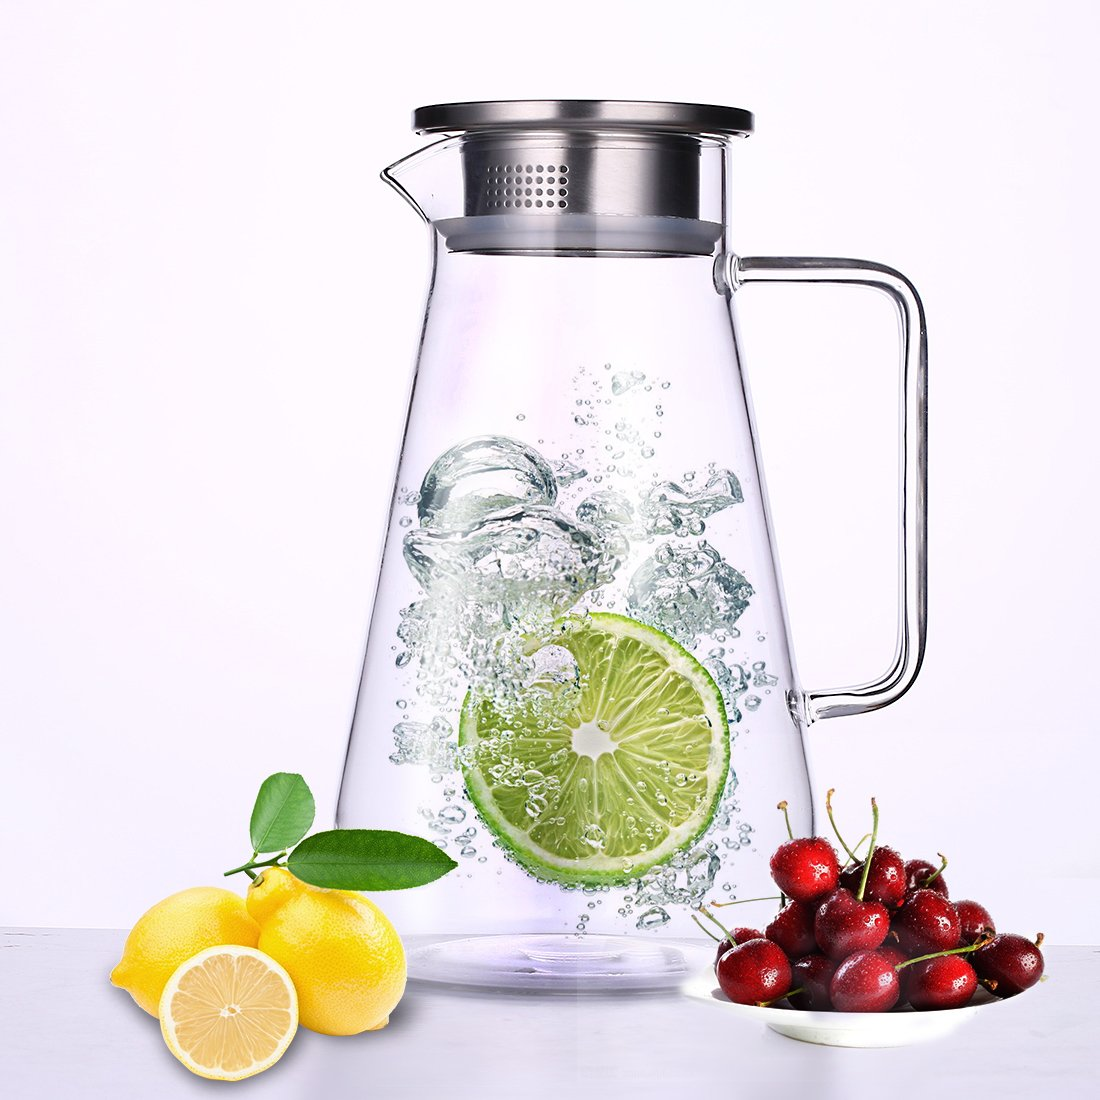 CENSUN Borosilicate Glass Pitcher Carafe with Stainless Steel Lid, Juice Iced Tea Beverage Hand Made Water Jug (1.5 Liter), SYTGYBL309 ShengYuanTai